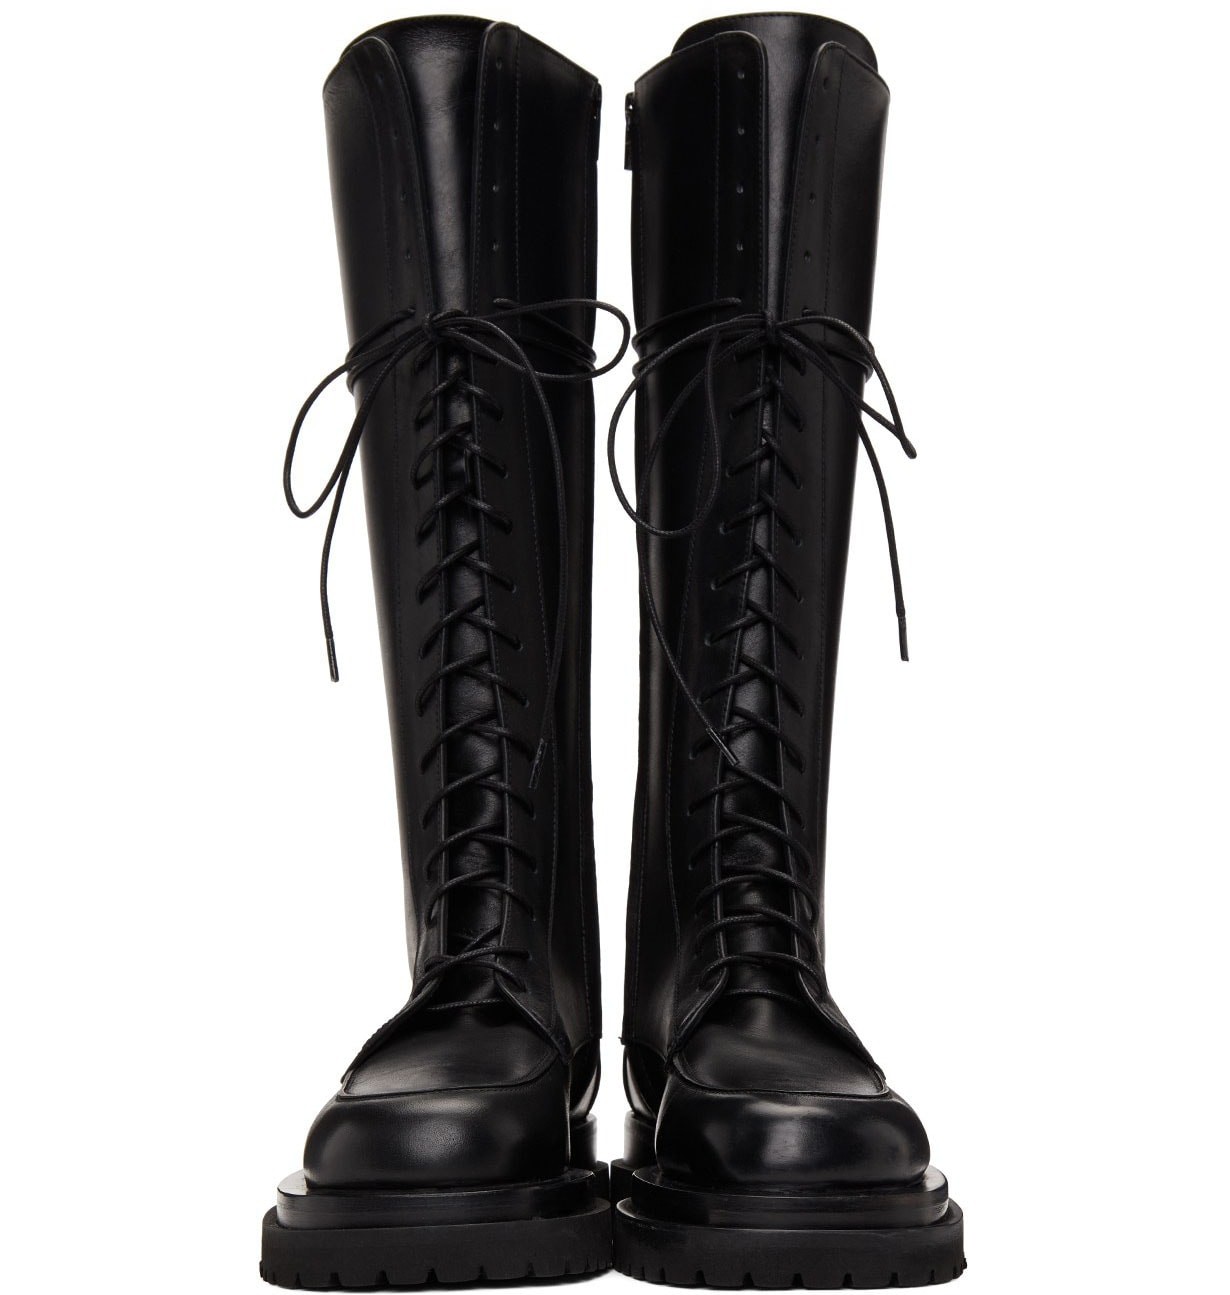 The Magda Butrym combat boots feature a lace-up fastening with ridged rubber platforms and heels